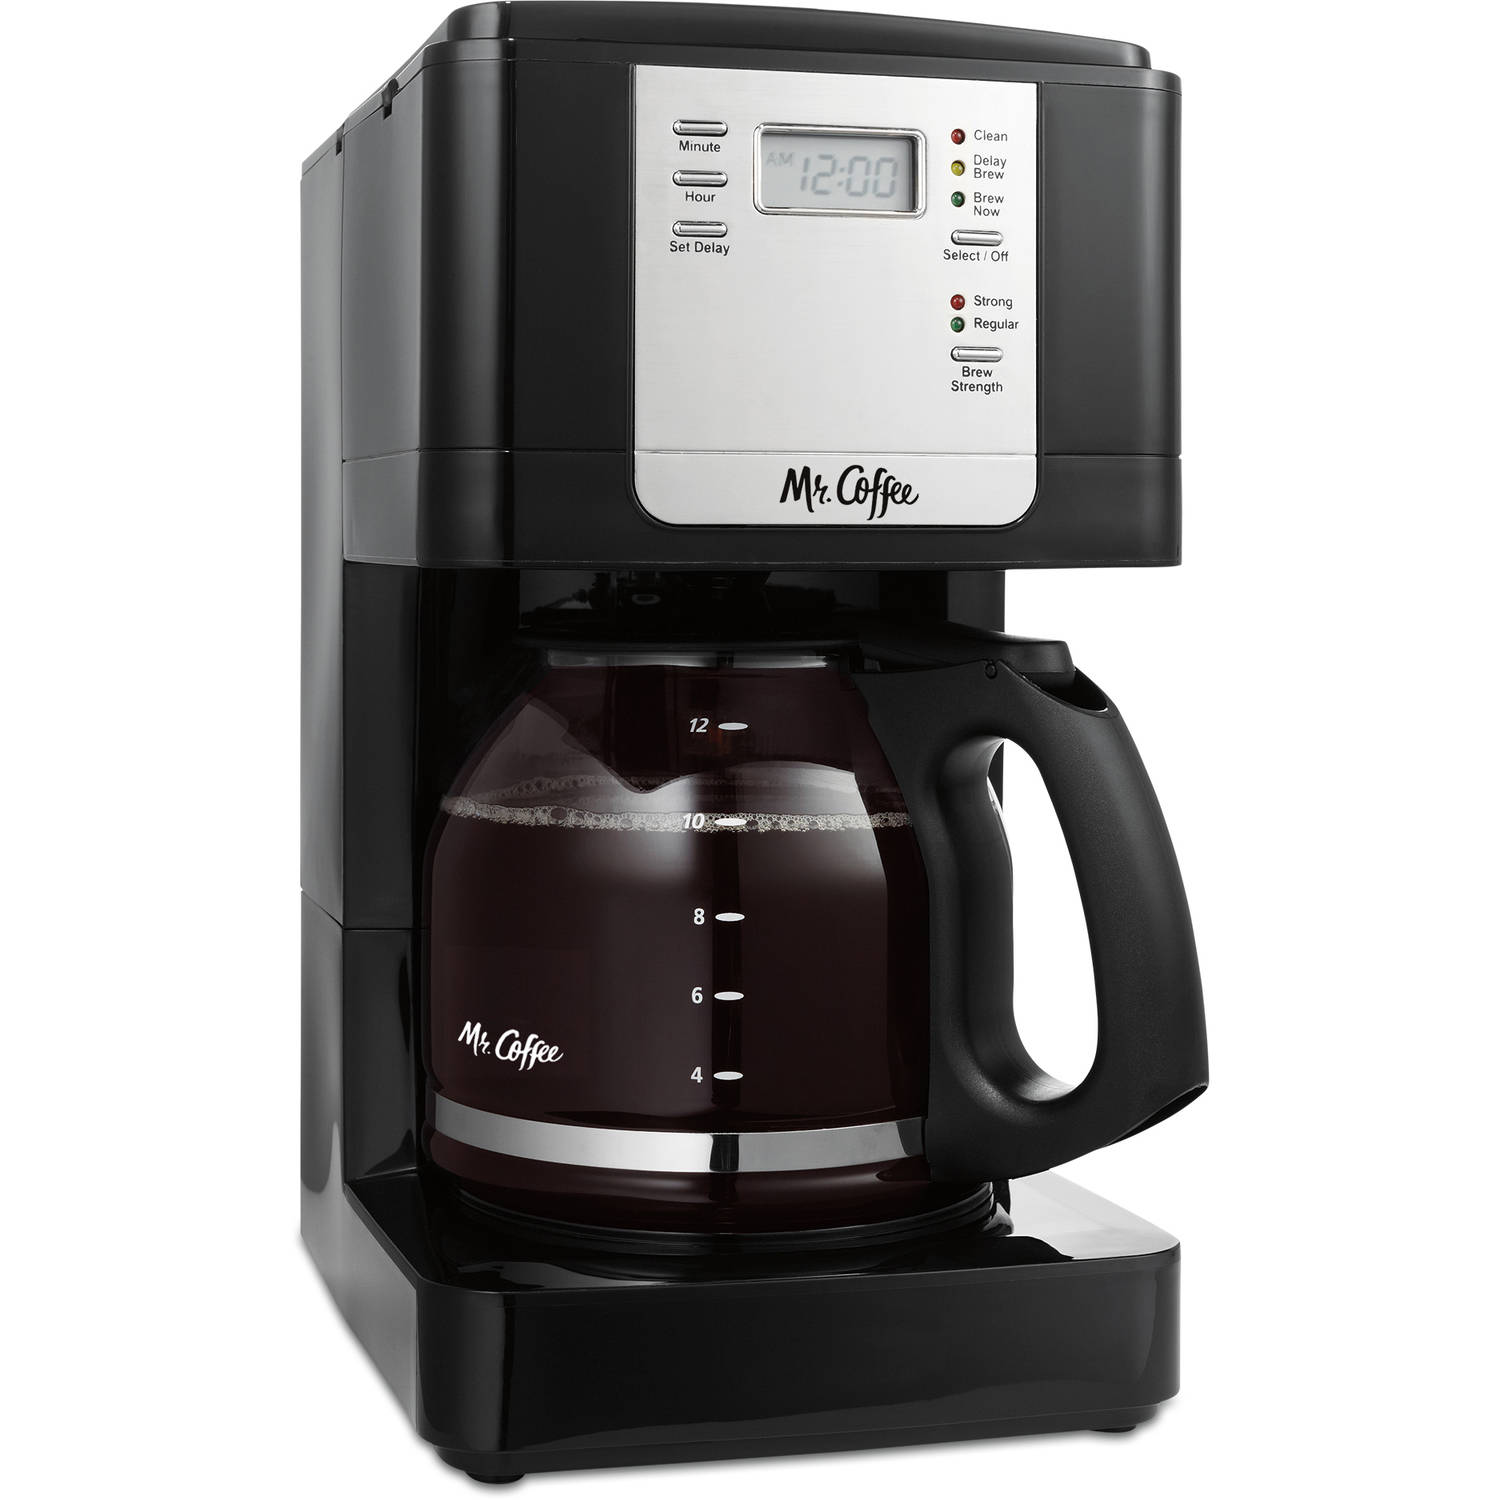 Mr Coffee 12 Cup Programmable Coffee Maker Jwx23wm